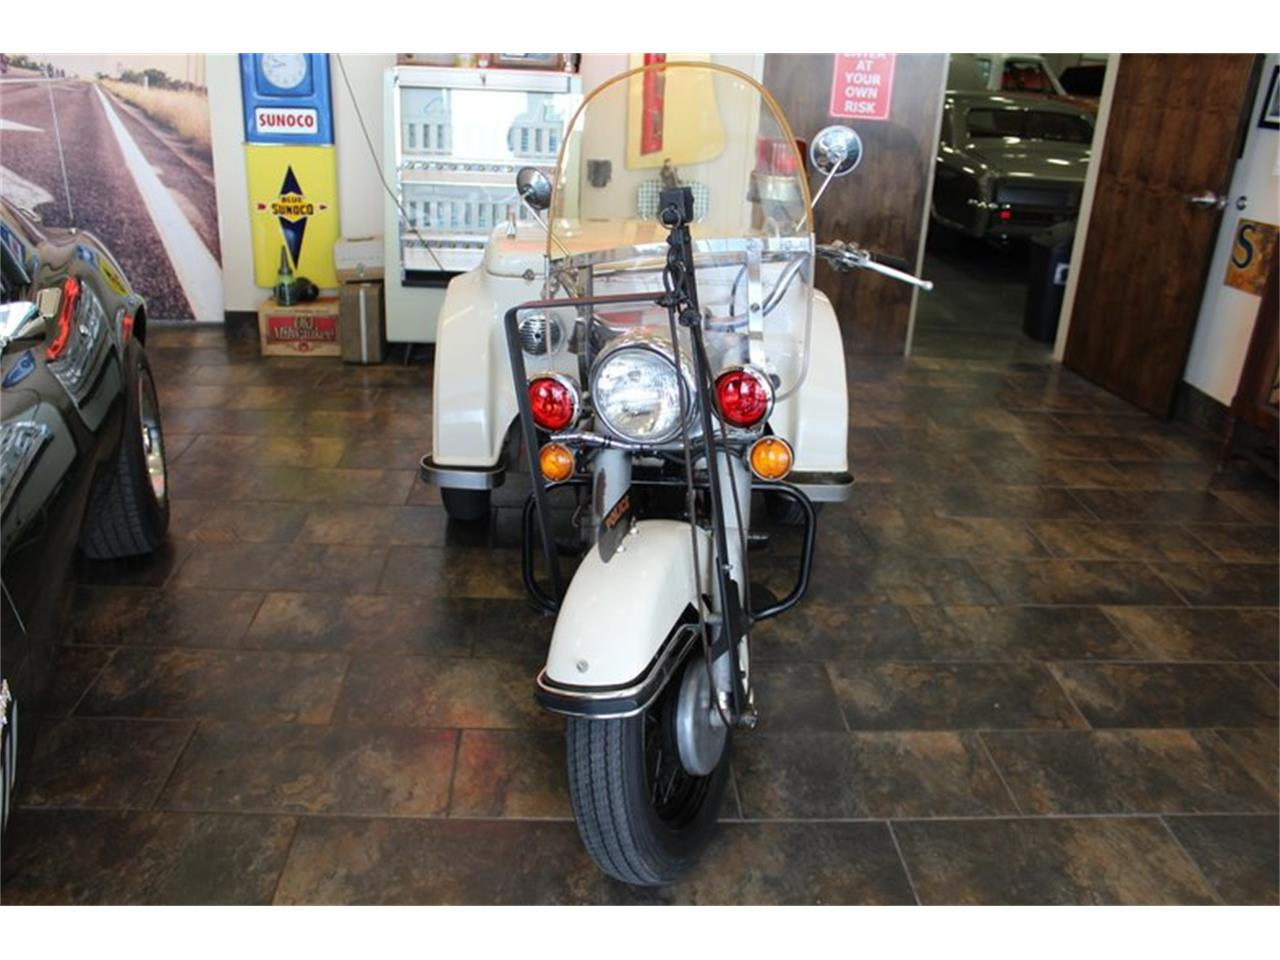 Large Picture of '67 Harley-Davidson Motorcycle located in Florida - $15,900.00 - PKVZ